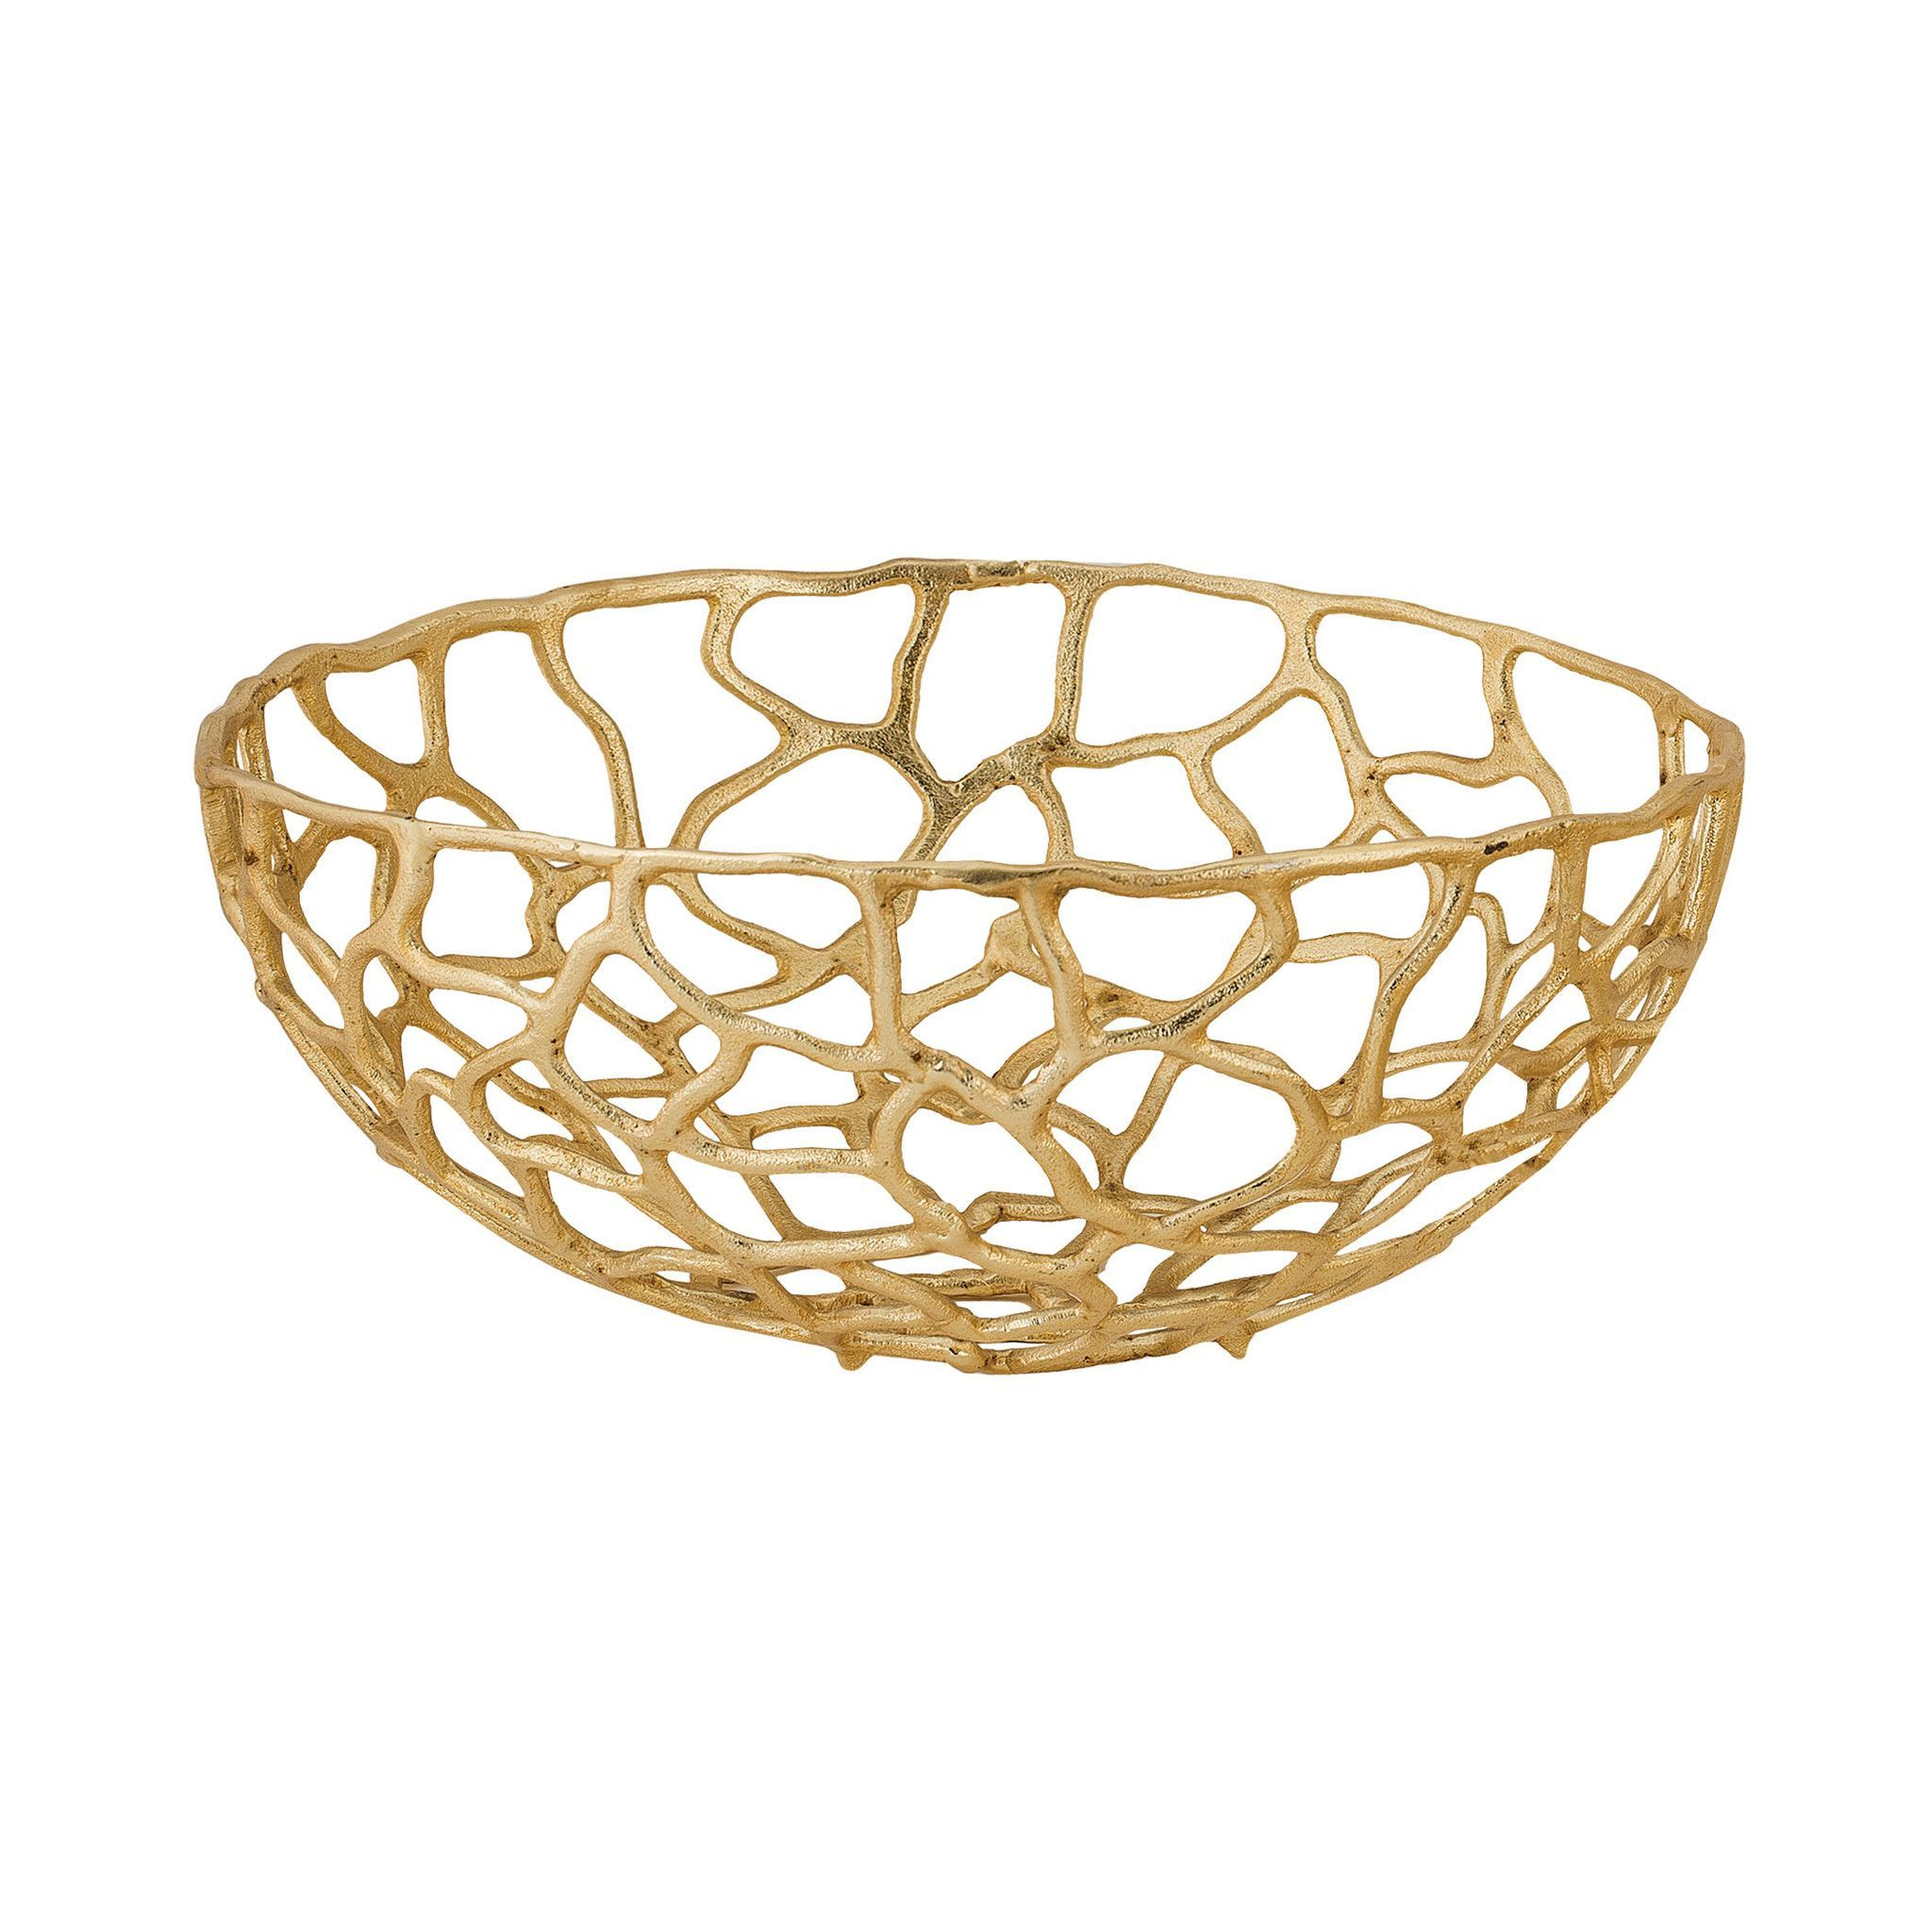 Gold Decorative Bowl Large Free Form Bowl Gold  Products  Pinterest  Bowls Elk And